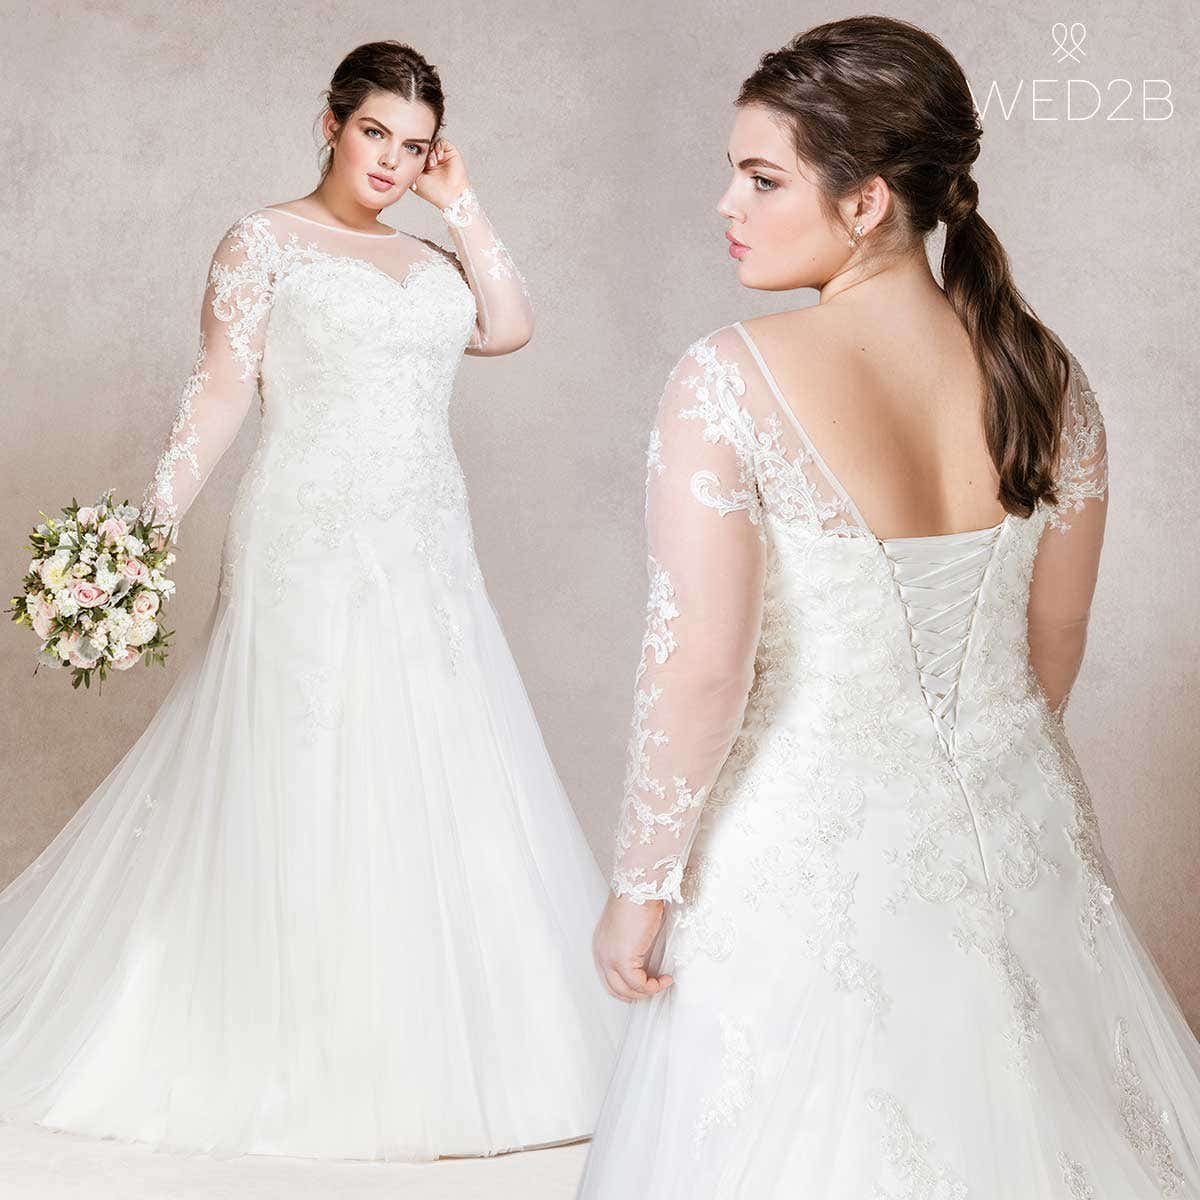 Isabelle stunning fit and flare wedding dress